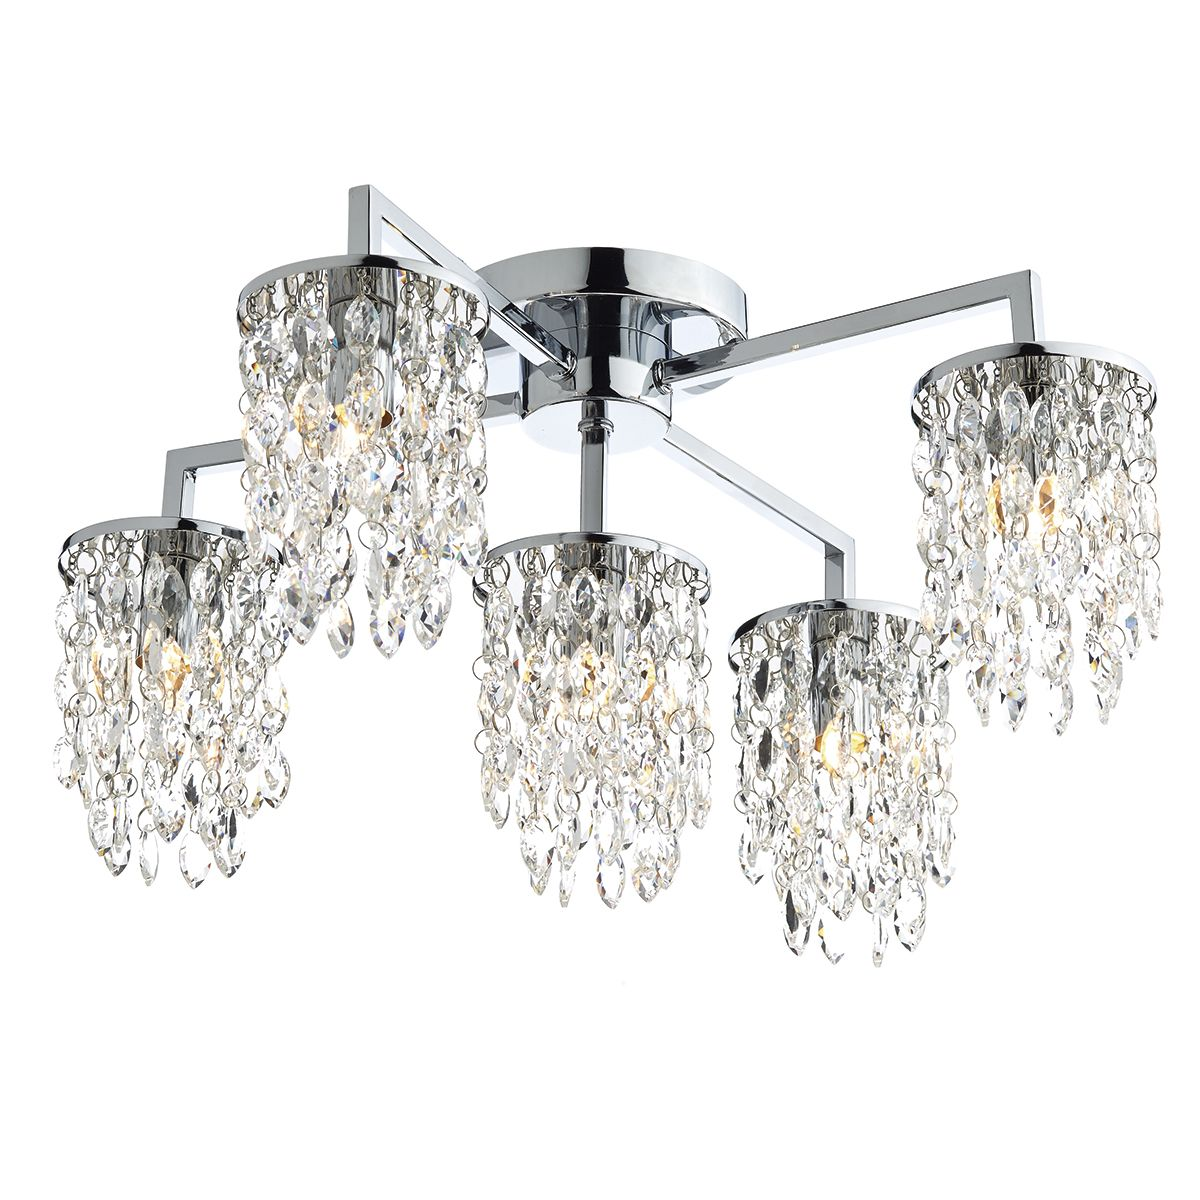 Niagra 5 Bulb Polished Chrome Clear Crystal Flush Ceiling Light